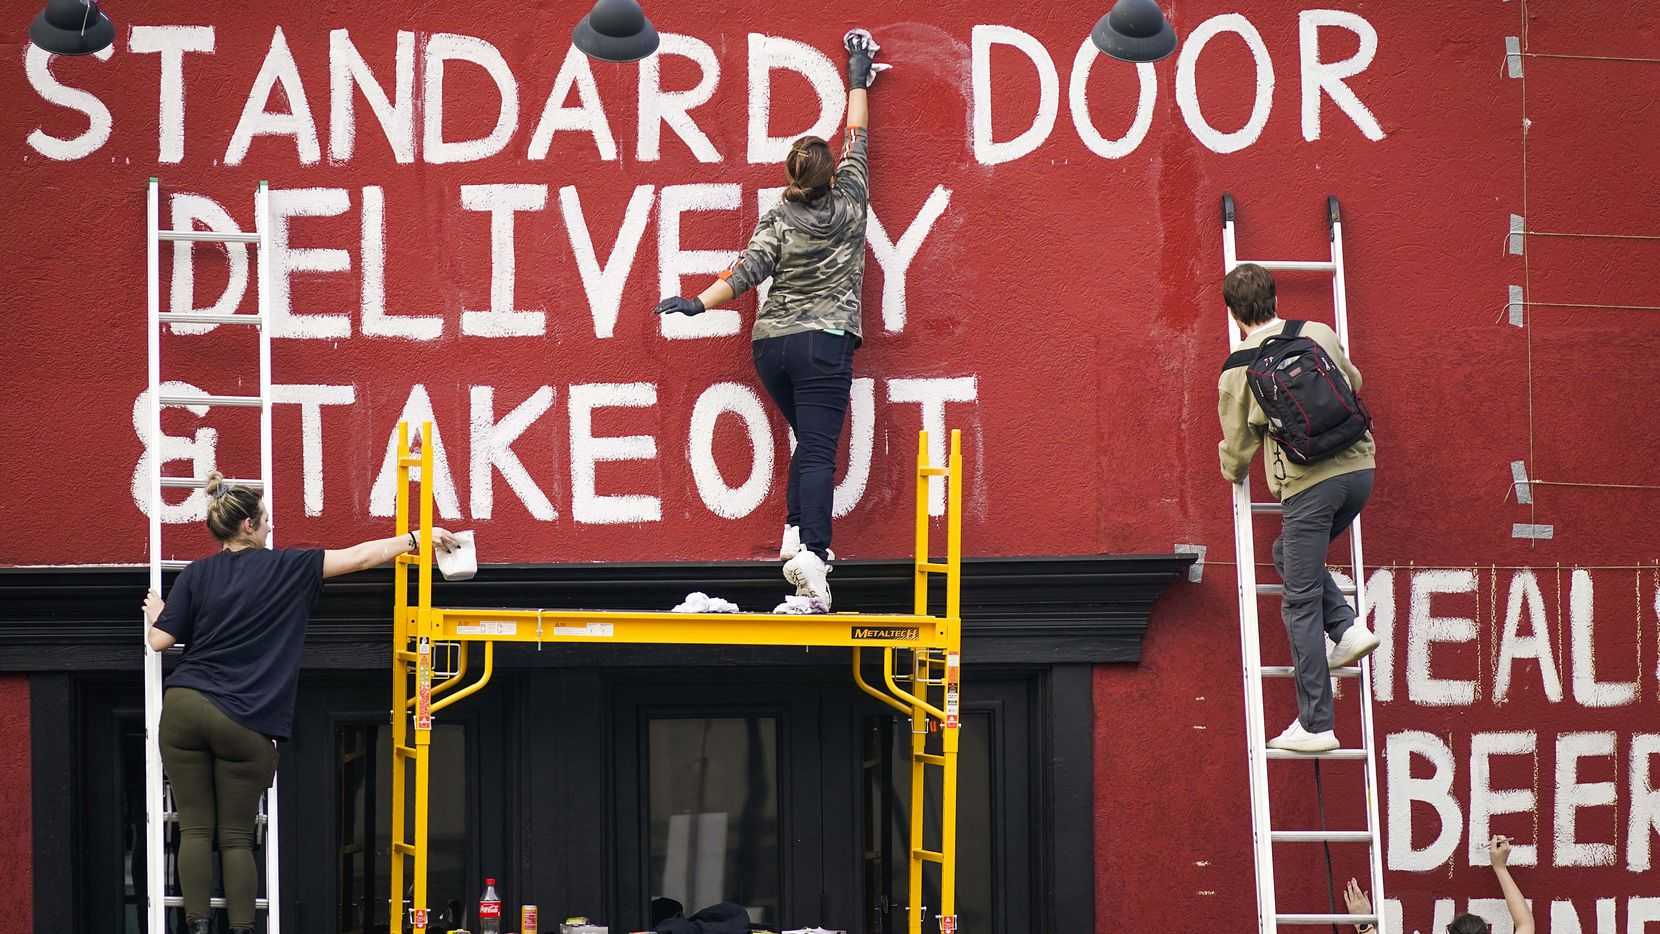 "From left, Sarah Schwartz, a server at sister property Clover, Xochitl Moctezuma, the wife of a kitchen staff member at The Standard Pour, and Jeffery Hook, the manager at Clover, paint signage advertising takeout and delivery covering the entire front wall at The Standard Pour in Uptown on Tuesday, March 17, 2020, in Dallas. After the city closed bars and limited restaurants to takeout, delivery and drive-thru only in response to the new coronavirus, owner Eddie ÔLuckyÕ Campbell made the decision to combine the staffs of The Standard Pour and sister bars Clover and Parliament into one delivery and takeout operation. Server Bre Archuleta said that while the effort to reinvent the bar and restaurant was intended to help the neighborhood and the community, she and the rest of the staff appreciated that Campbell was doing this also, ""so we all still have jobs.  He wanted to take care of us all as a family.""  While watching the staff paint Campbell said, ""this may be the most American thing I've ever done."""